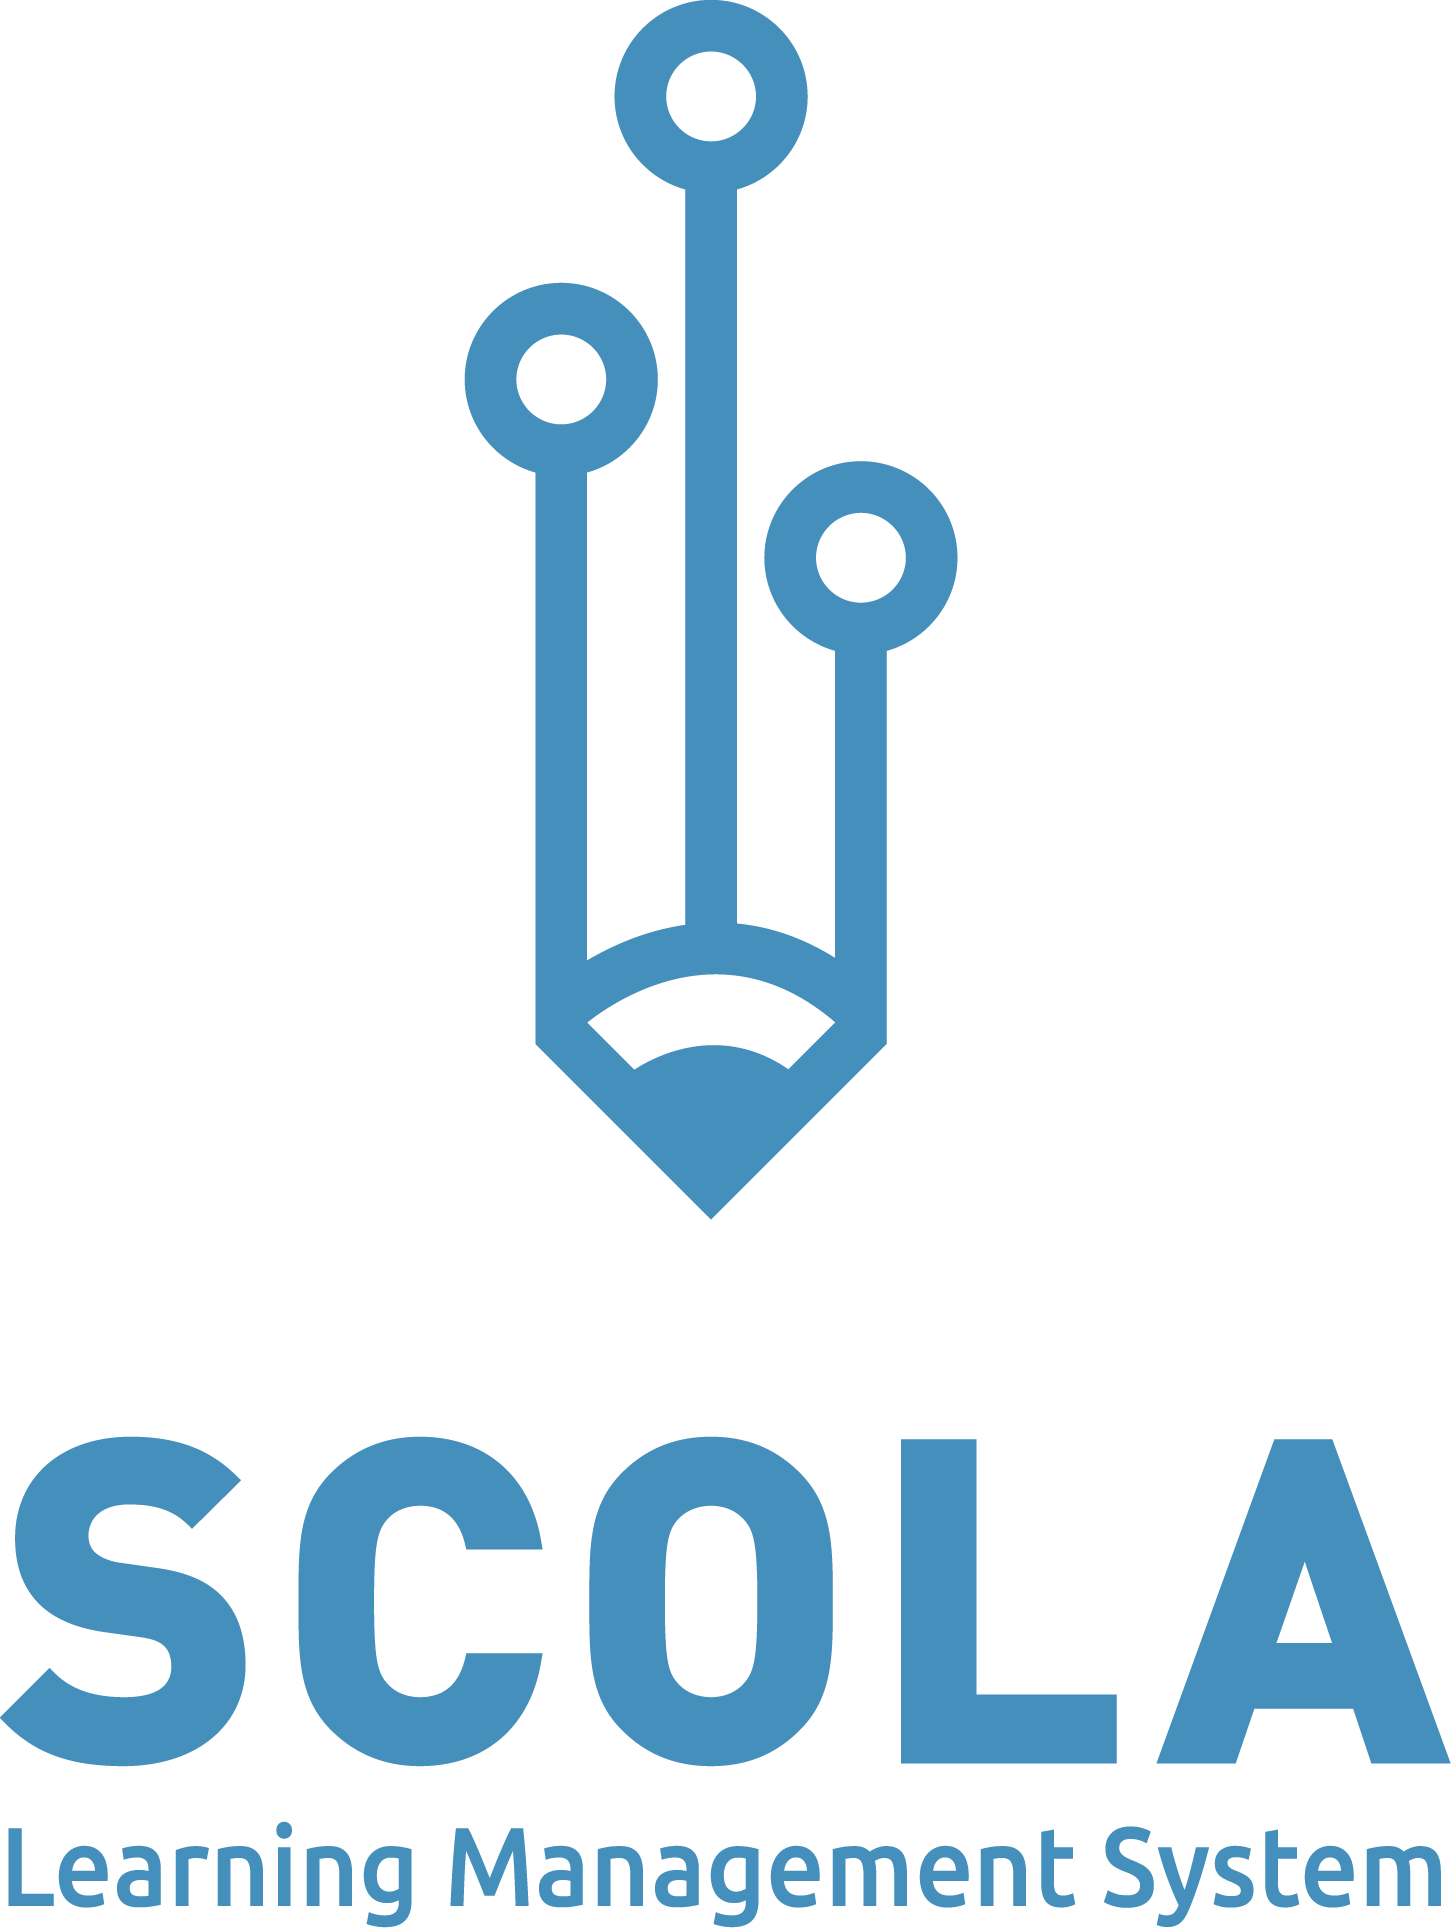 SCOLA LEARNING MANAGEMENT SYSTEM